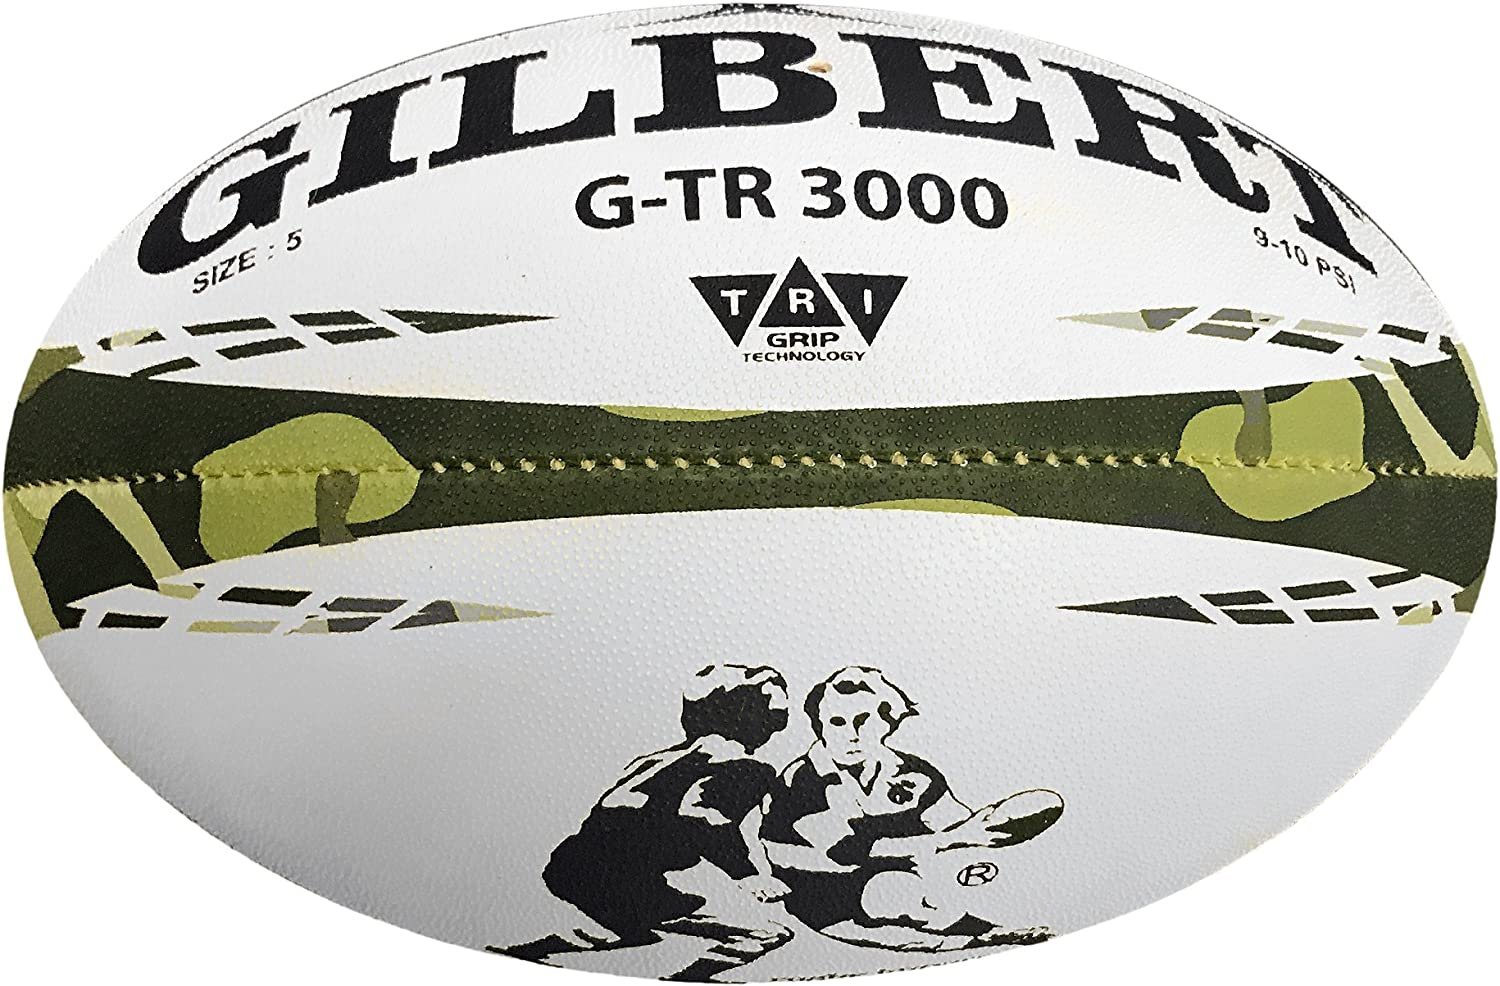 Gilbert G-TR3000 Training Rugby - Ball Max 44% OFF Camo Save money